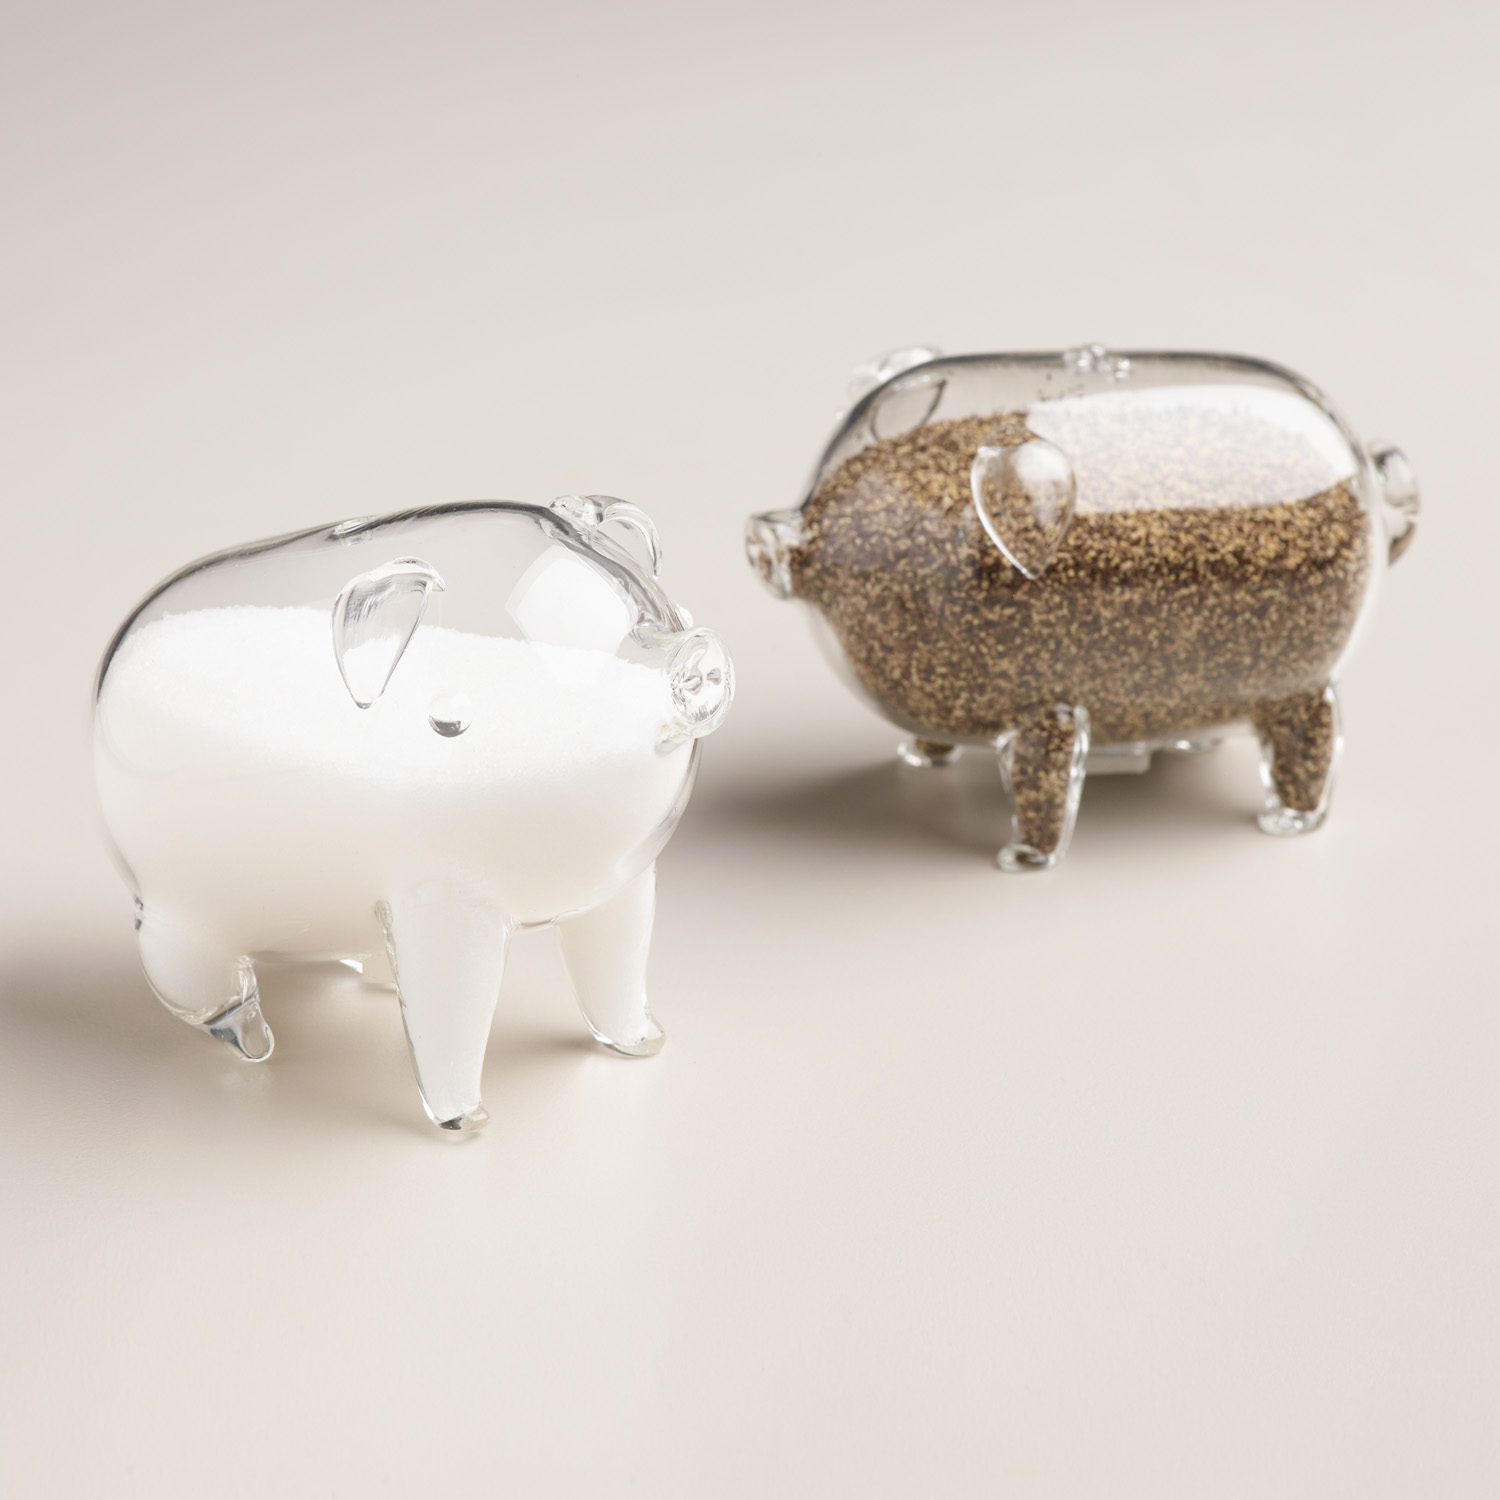 508689_S&P_GLASS_PIGS_propped_HRR.jpg